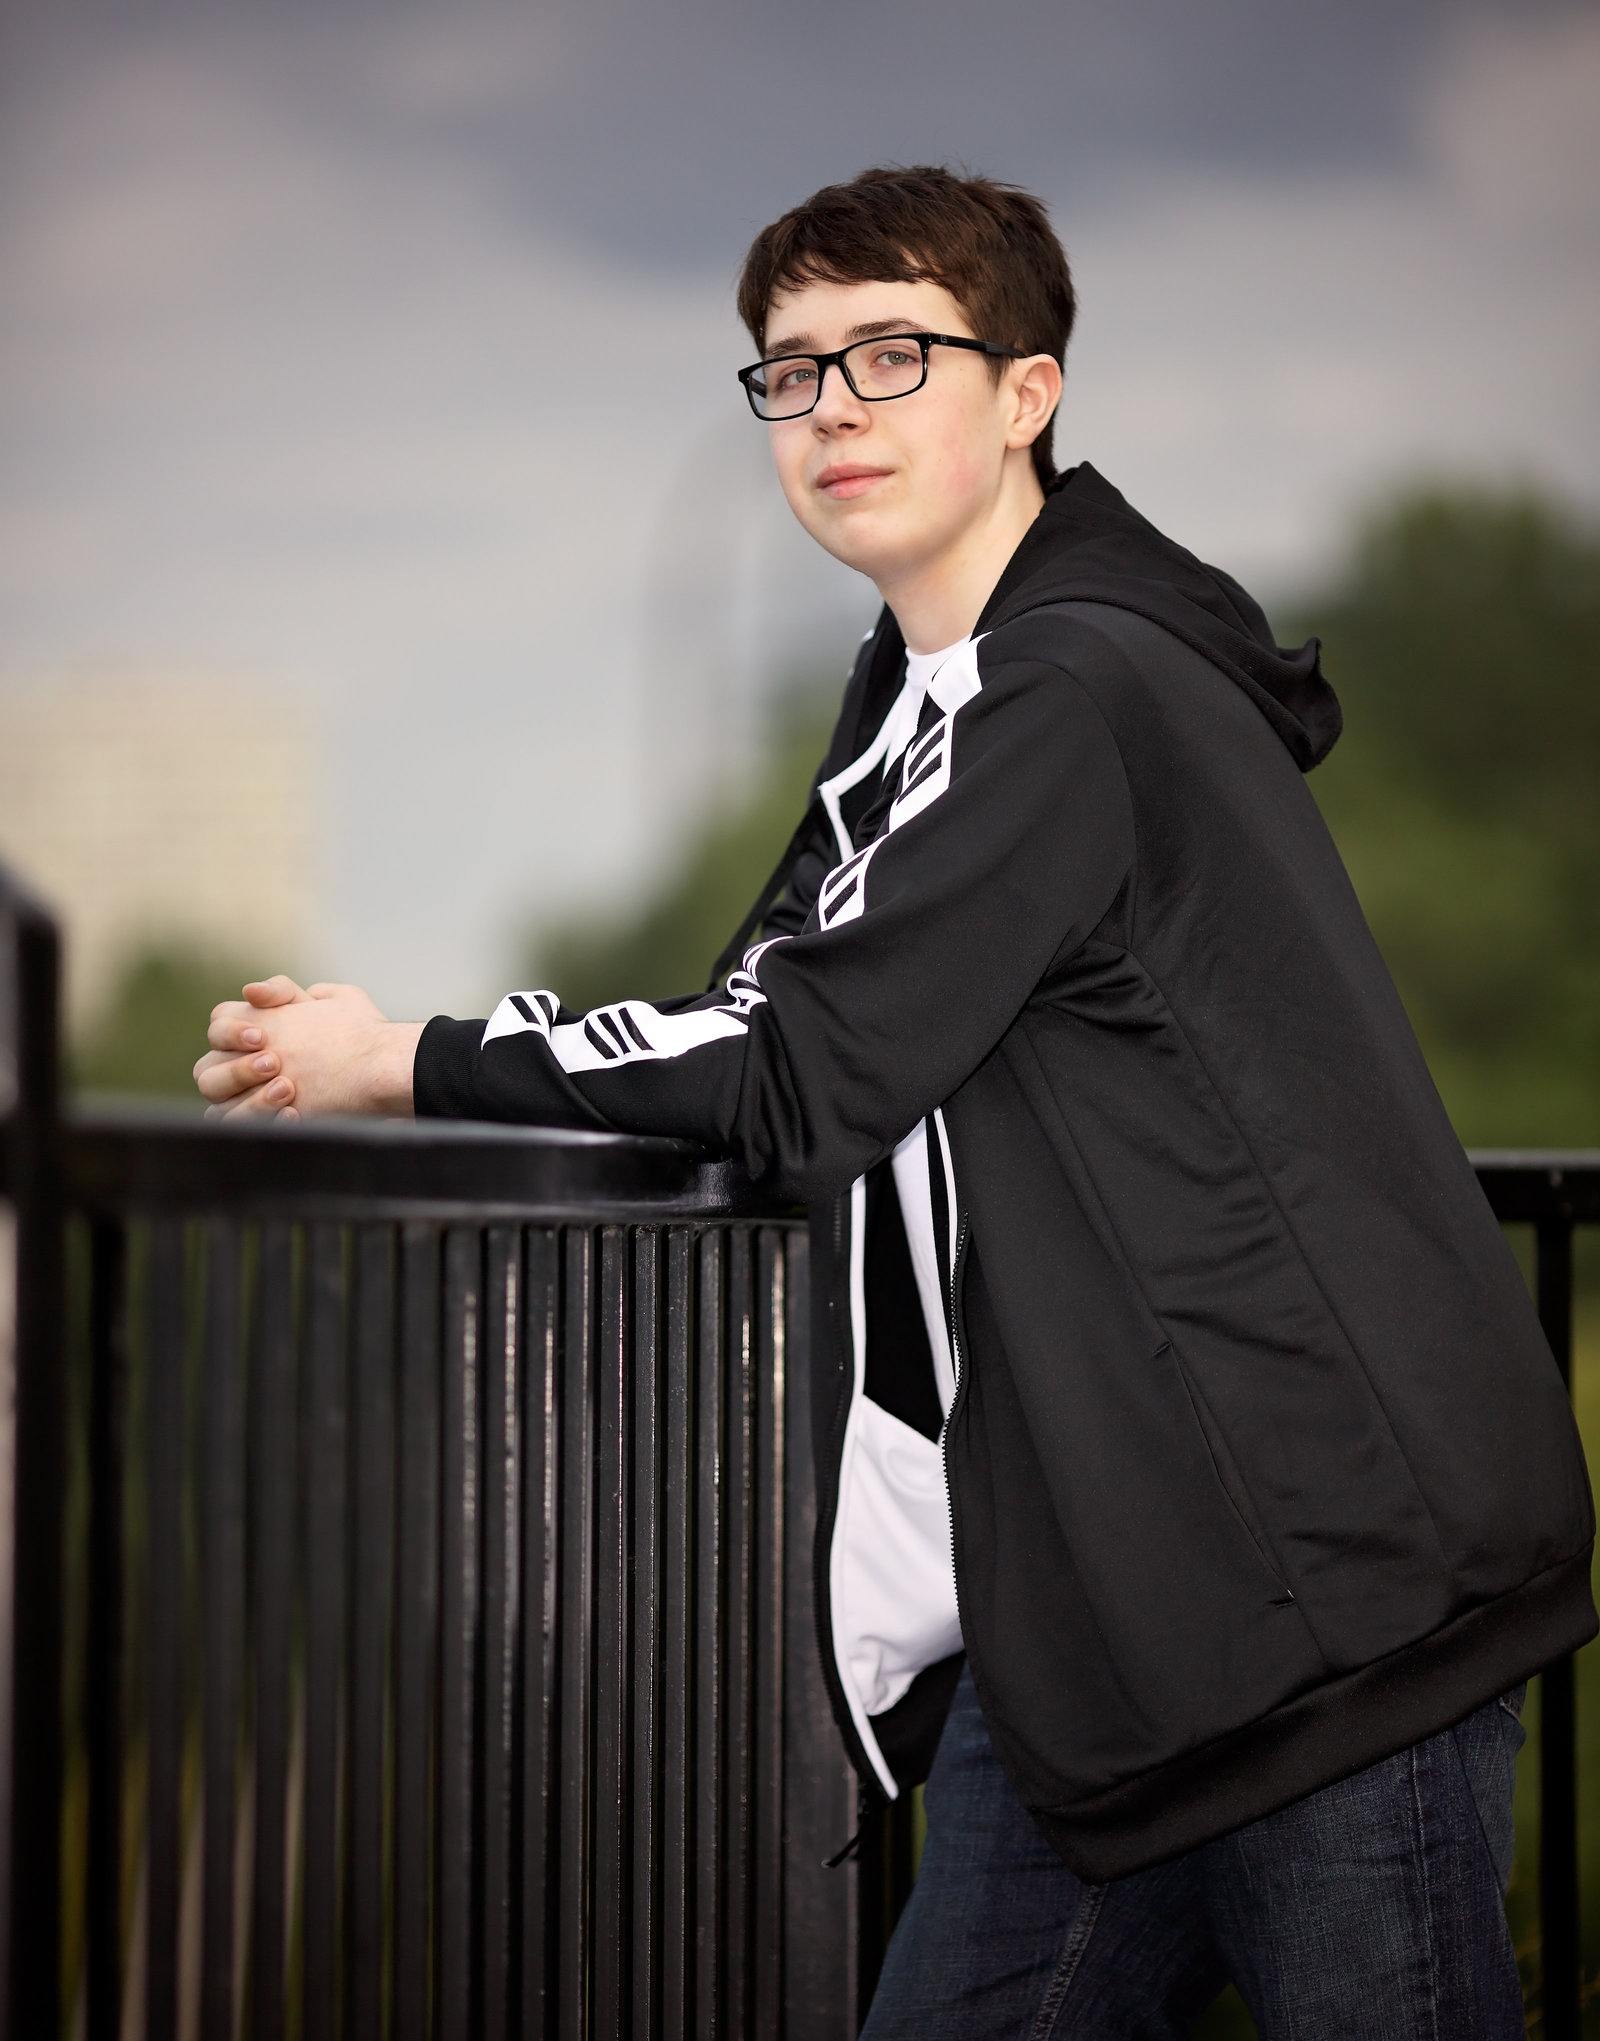 Senior portraits of guy on railing in Savannah GA